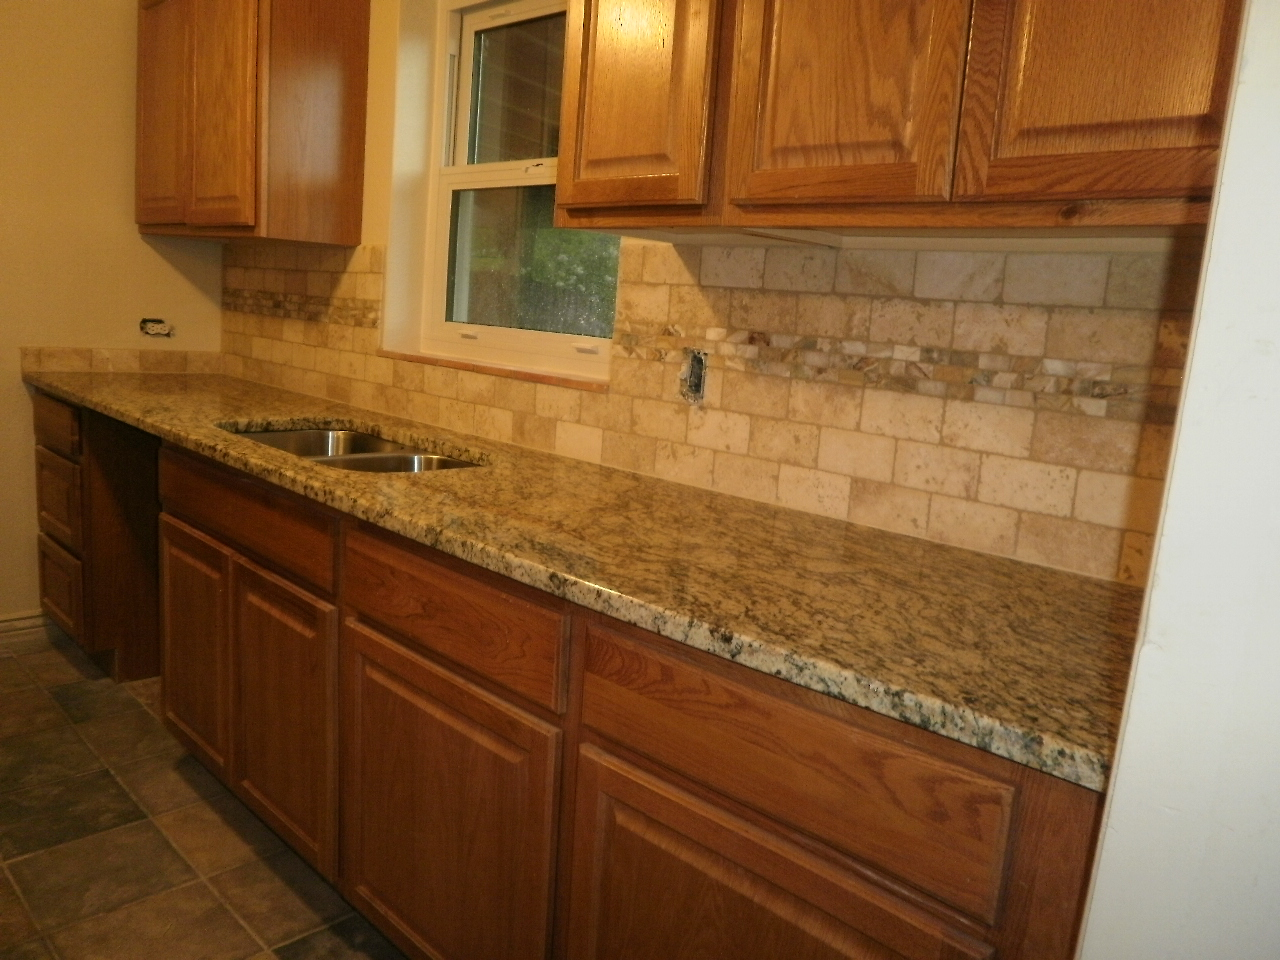 Santa cecilia granite backsplash ideas Granite kitchen countertops pictures